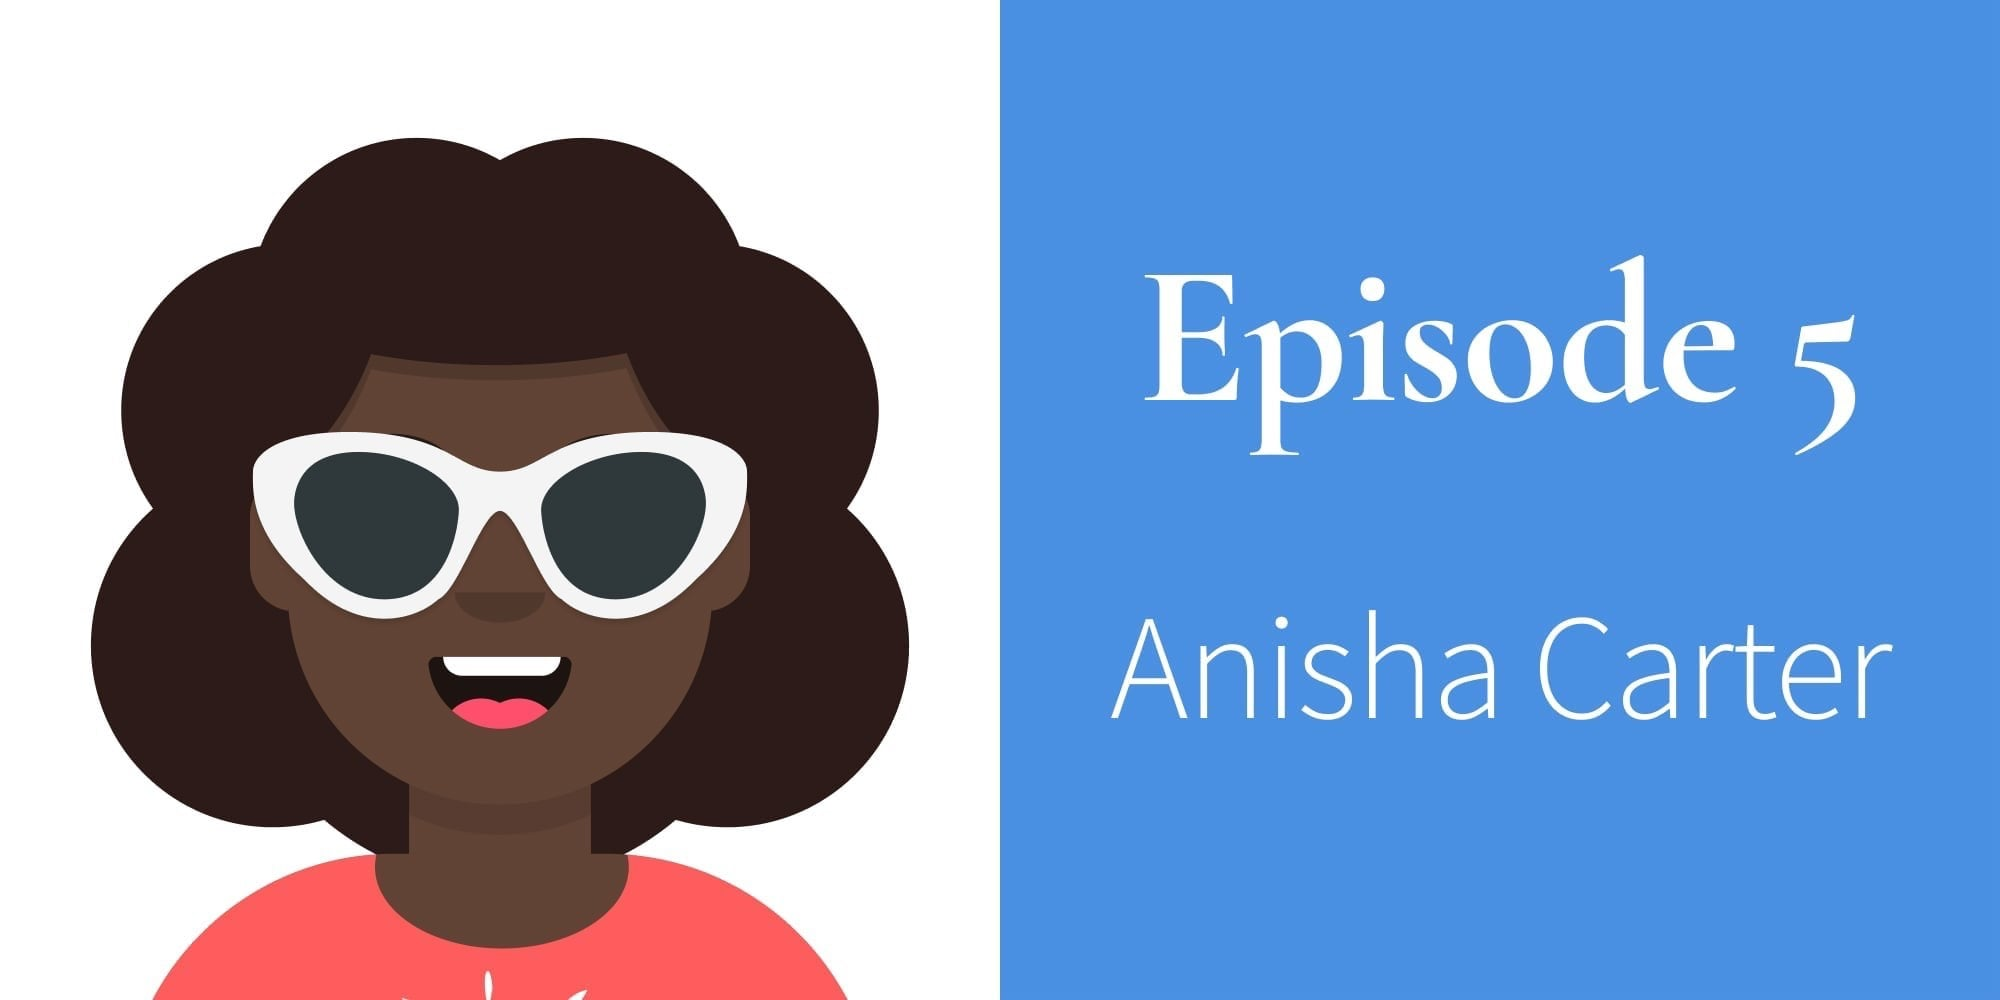 Episode 5. Anisha Carter